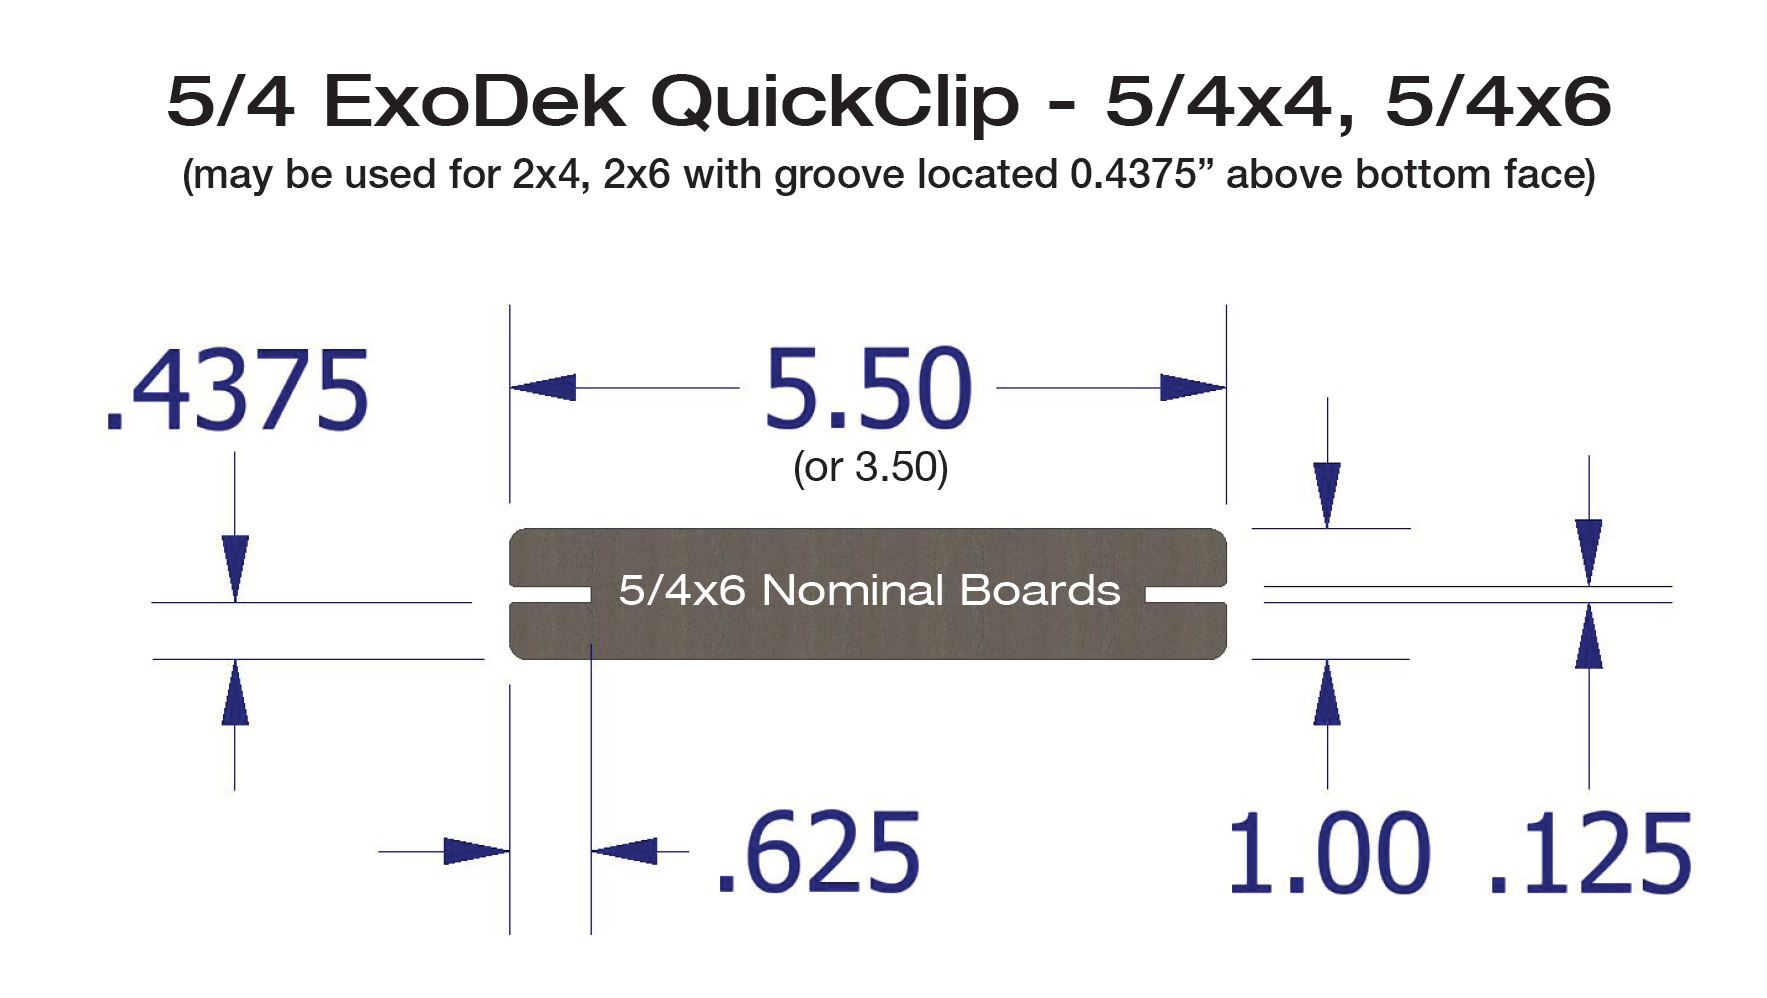 ExoDek QuickClip Hidden Deck Fasteners Grooved Decking Board Patterns